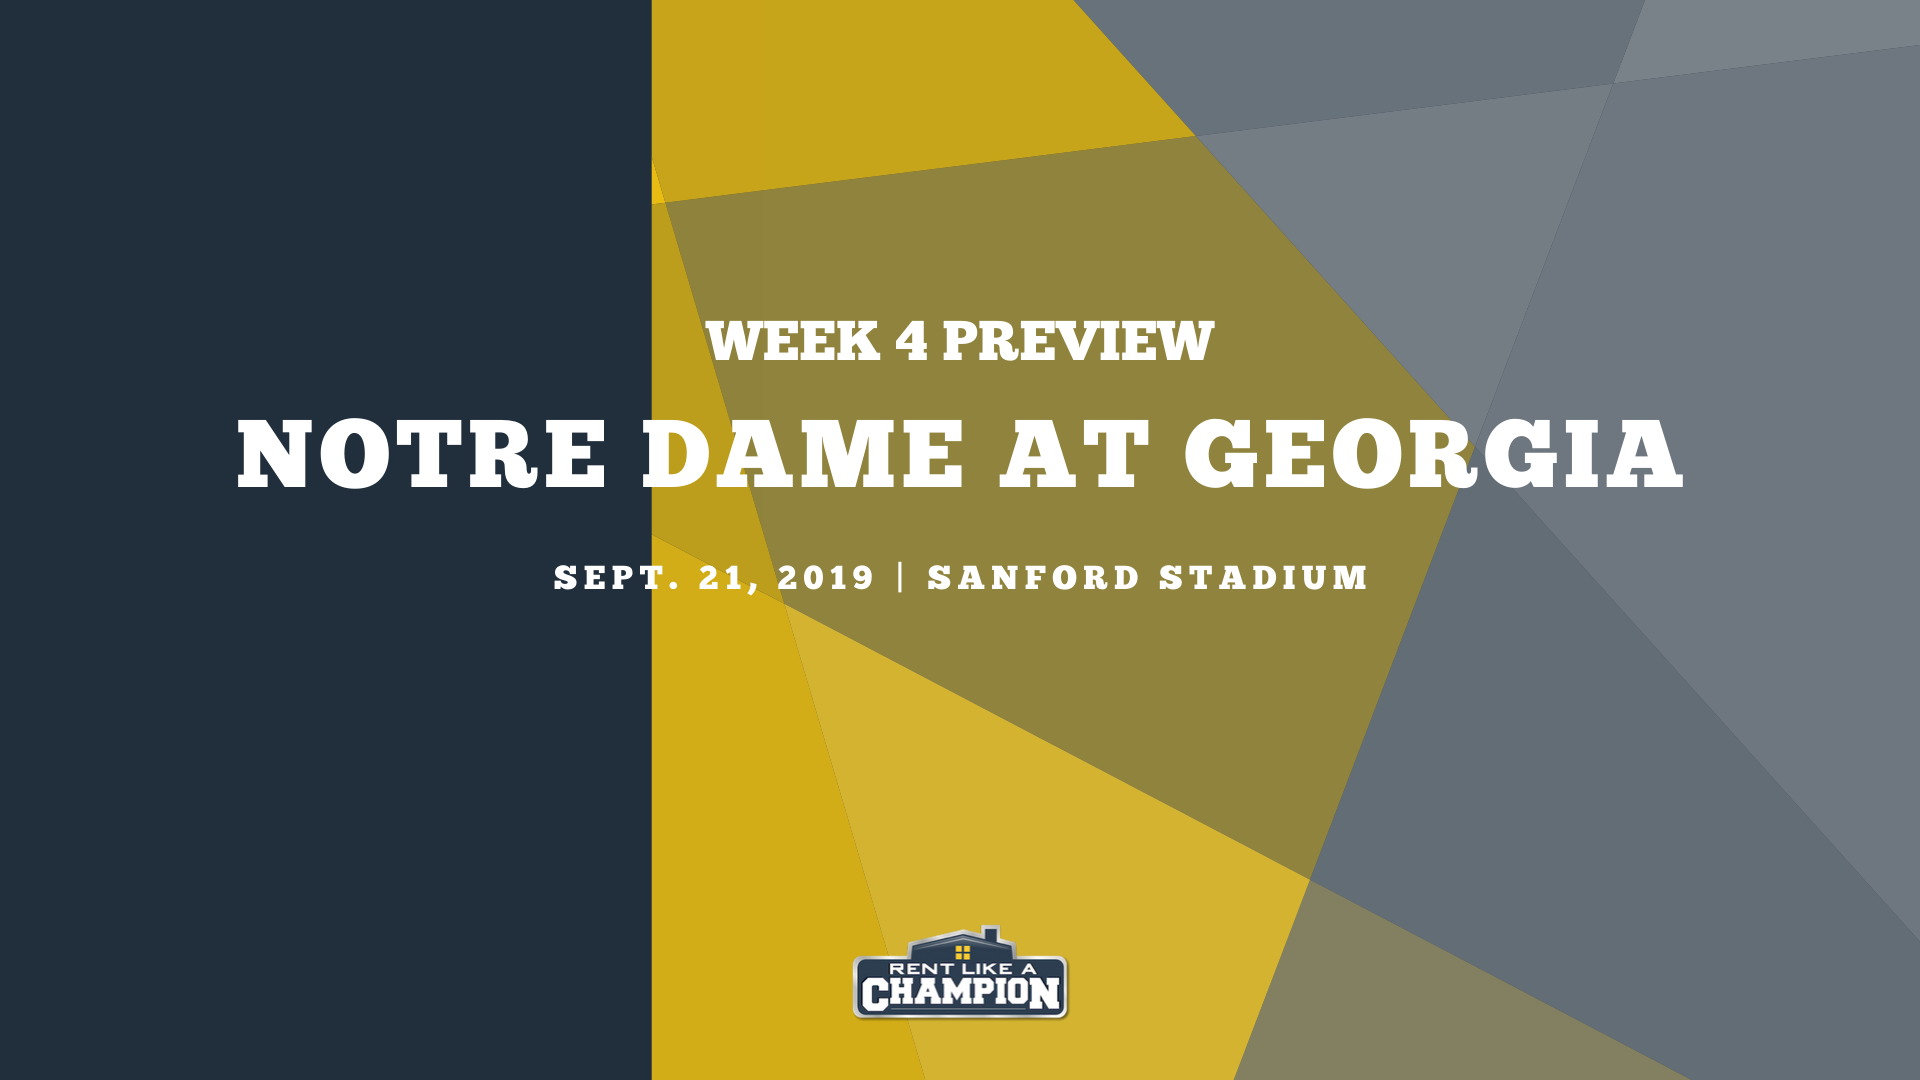 Notre Dame Game Preview Template (1)-1